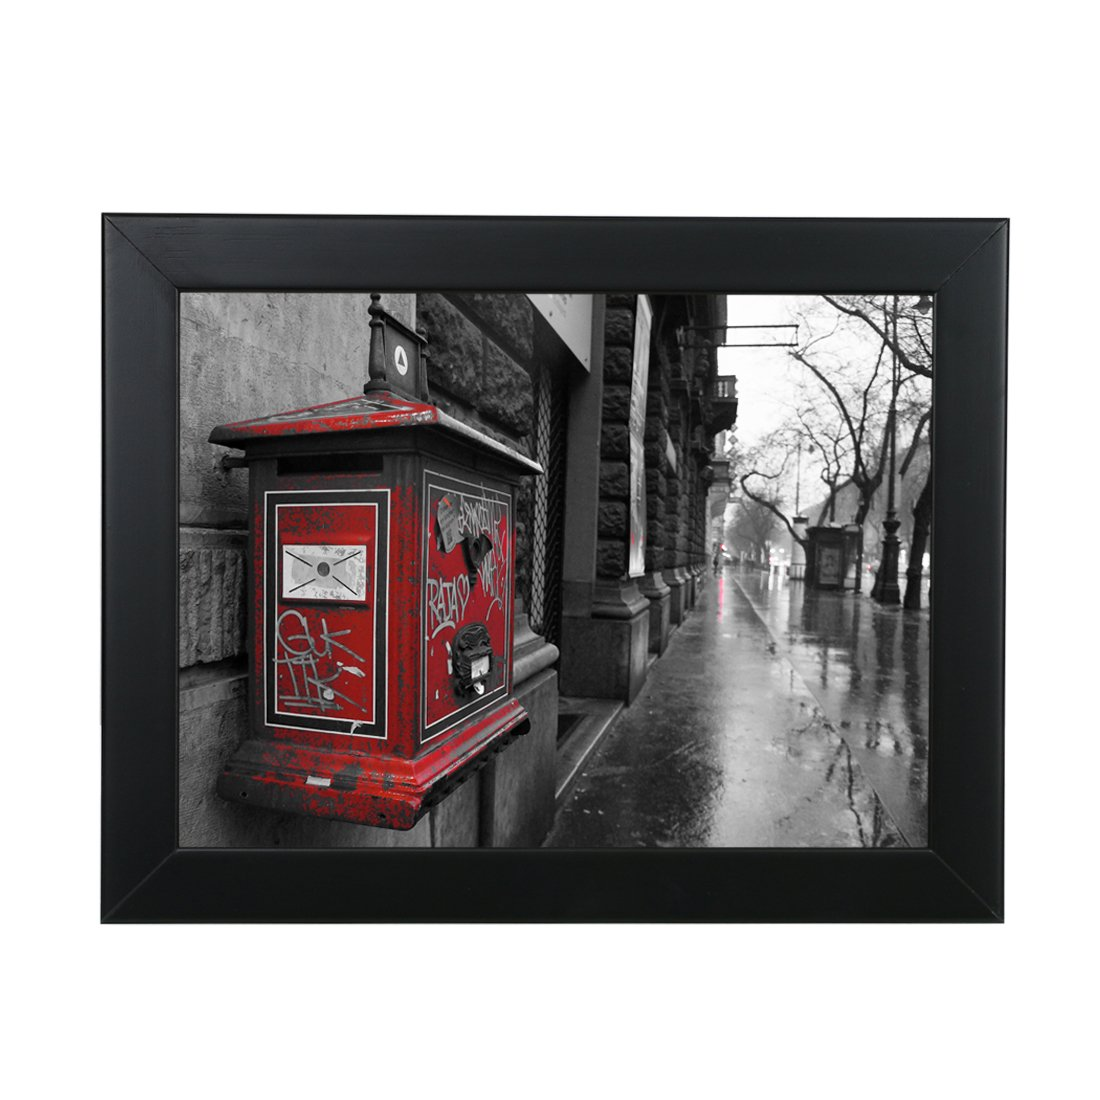 Bojin Black 10 By 12 25x30 Cm Wood Family Picture Frame